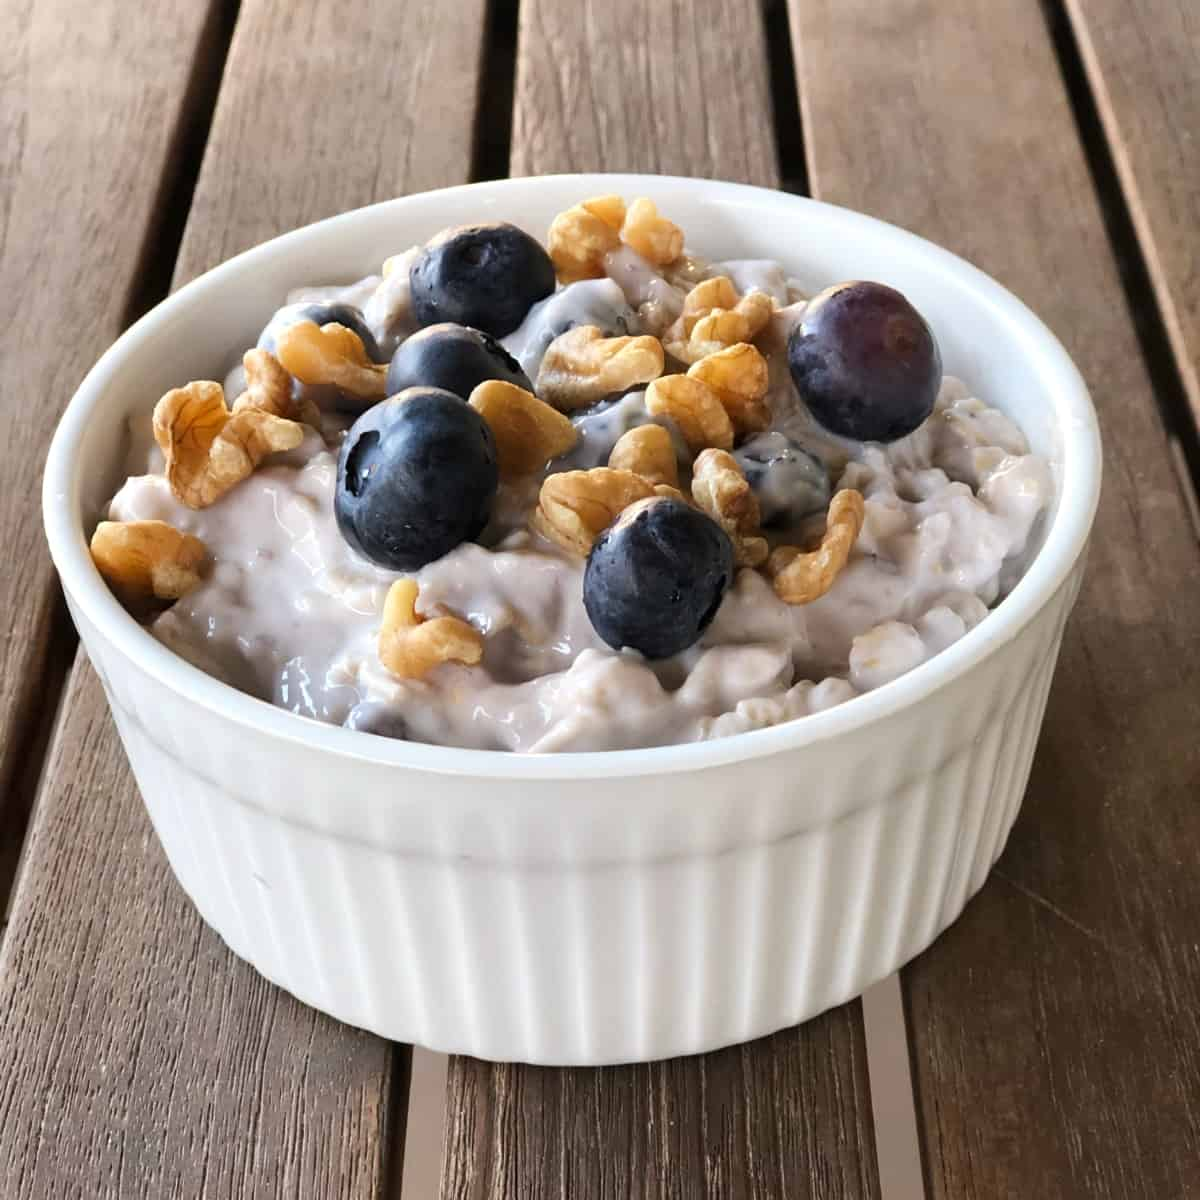 Blueberry maple overnight oats topped with toasted walnuts and fresh blueberries in small white ramekin